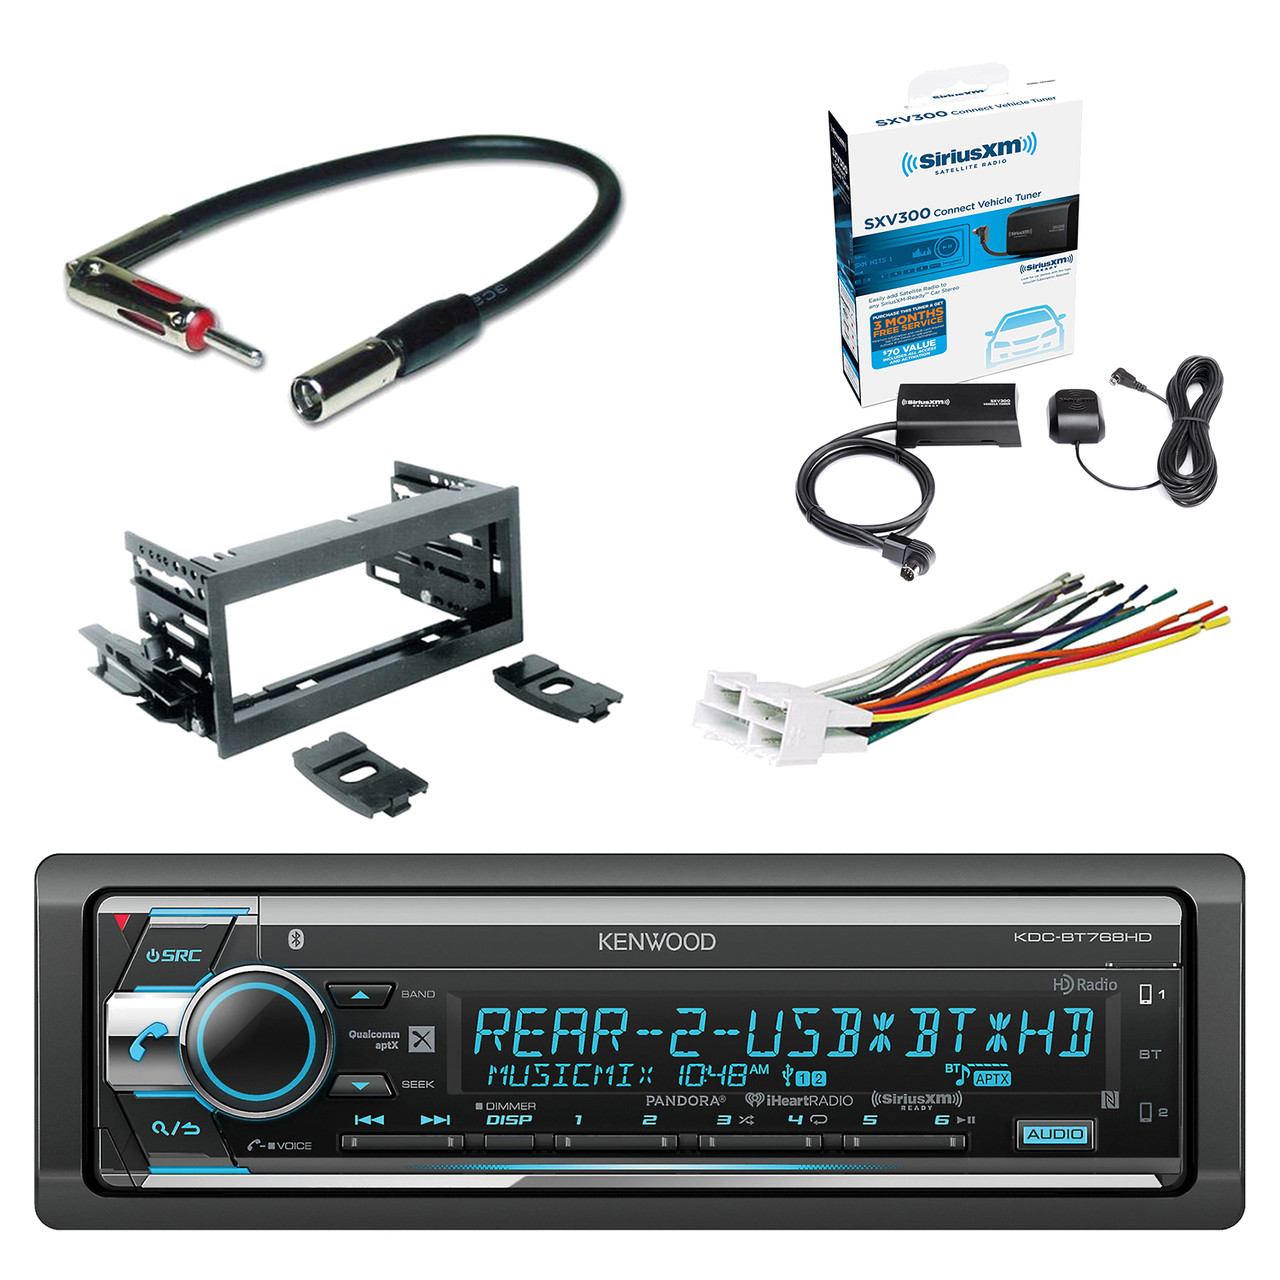 car audio receiver with bluetooth siriusxm satellite radio vehicle tuner kit scosche dash kit scosche gm micro delco xm radio wiring harness adapter [ 1280 x 1280 Pixel ]